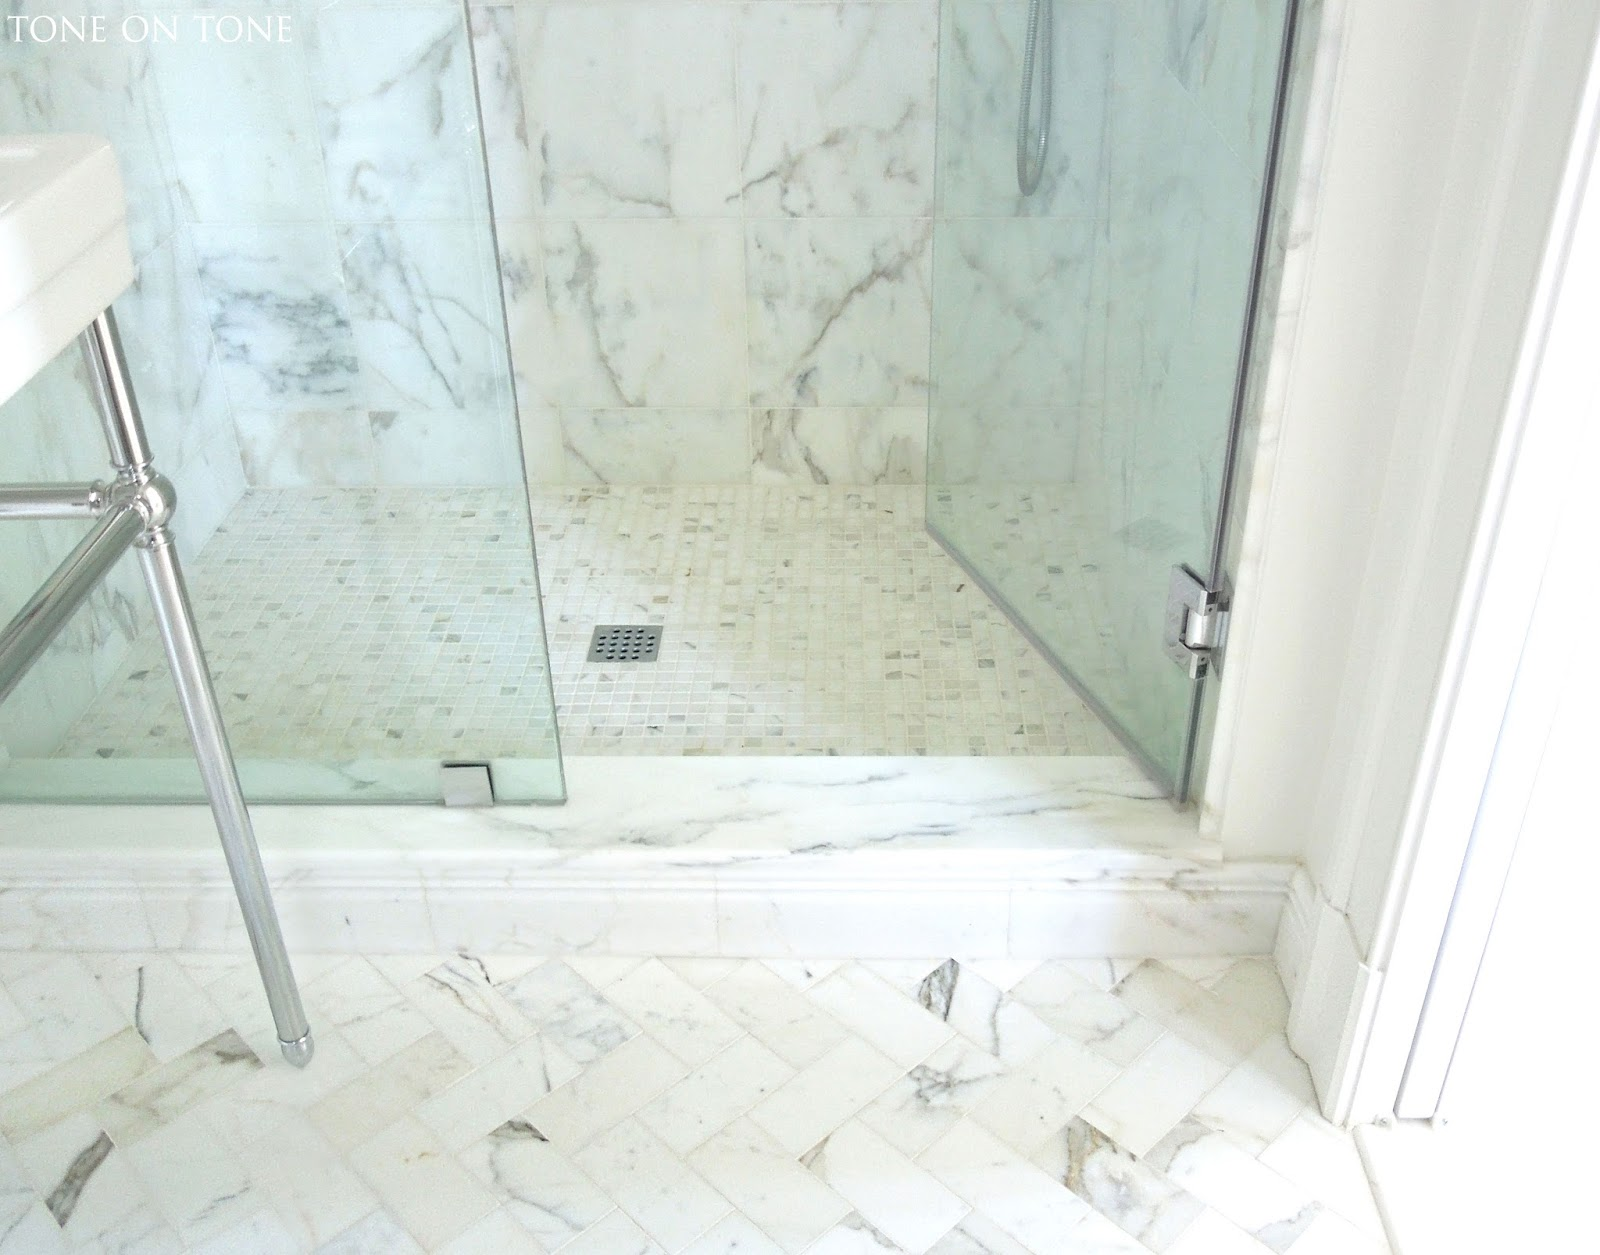 Tone on tone for Marble bathroom bin